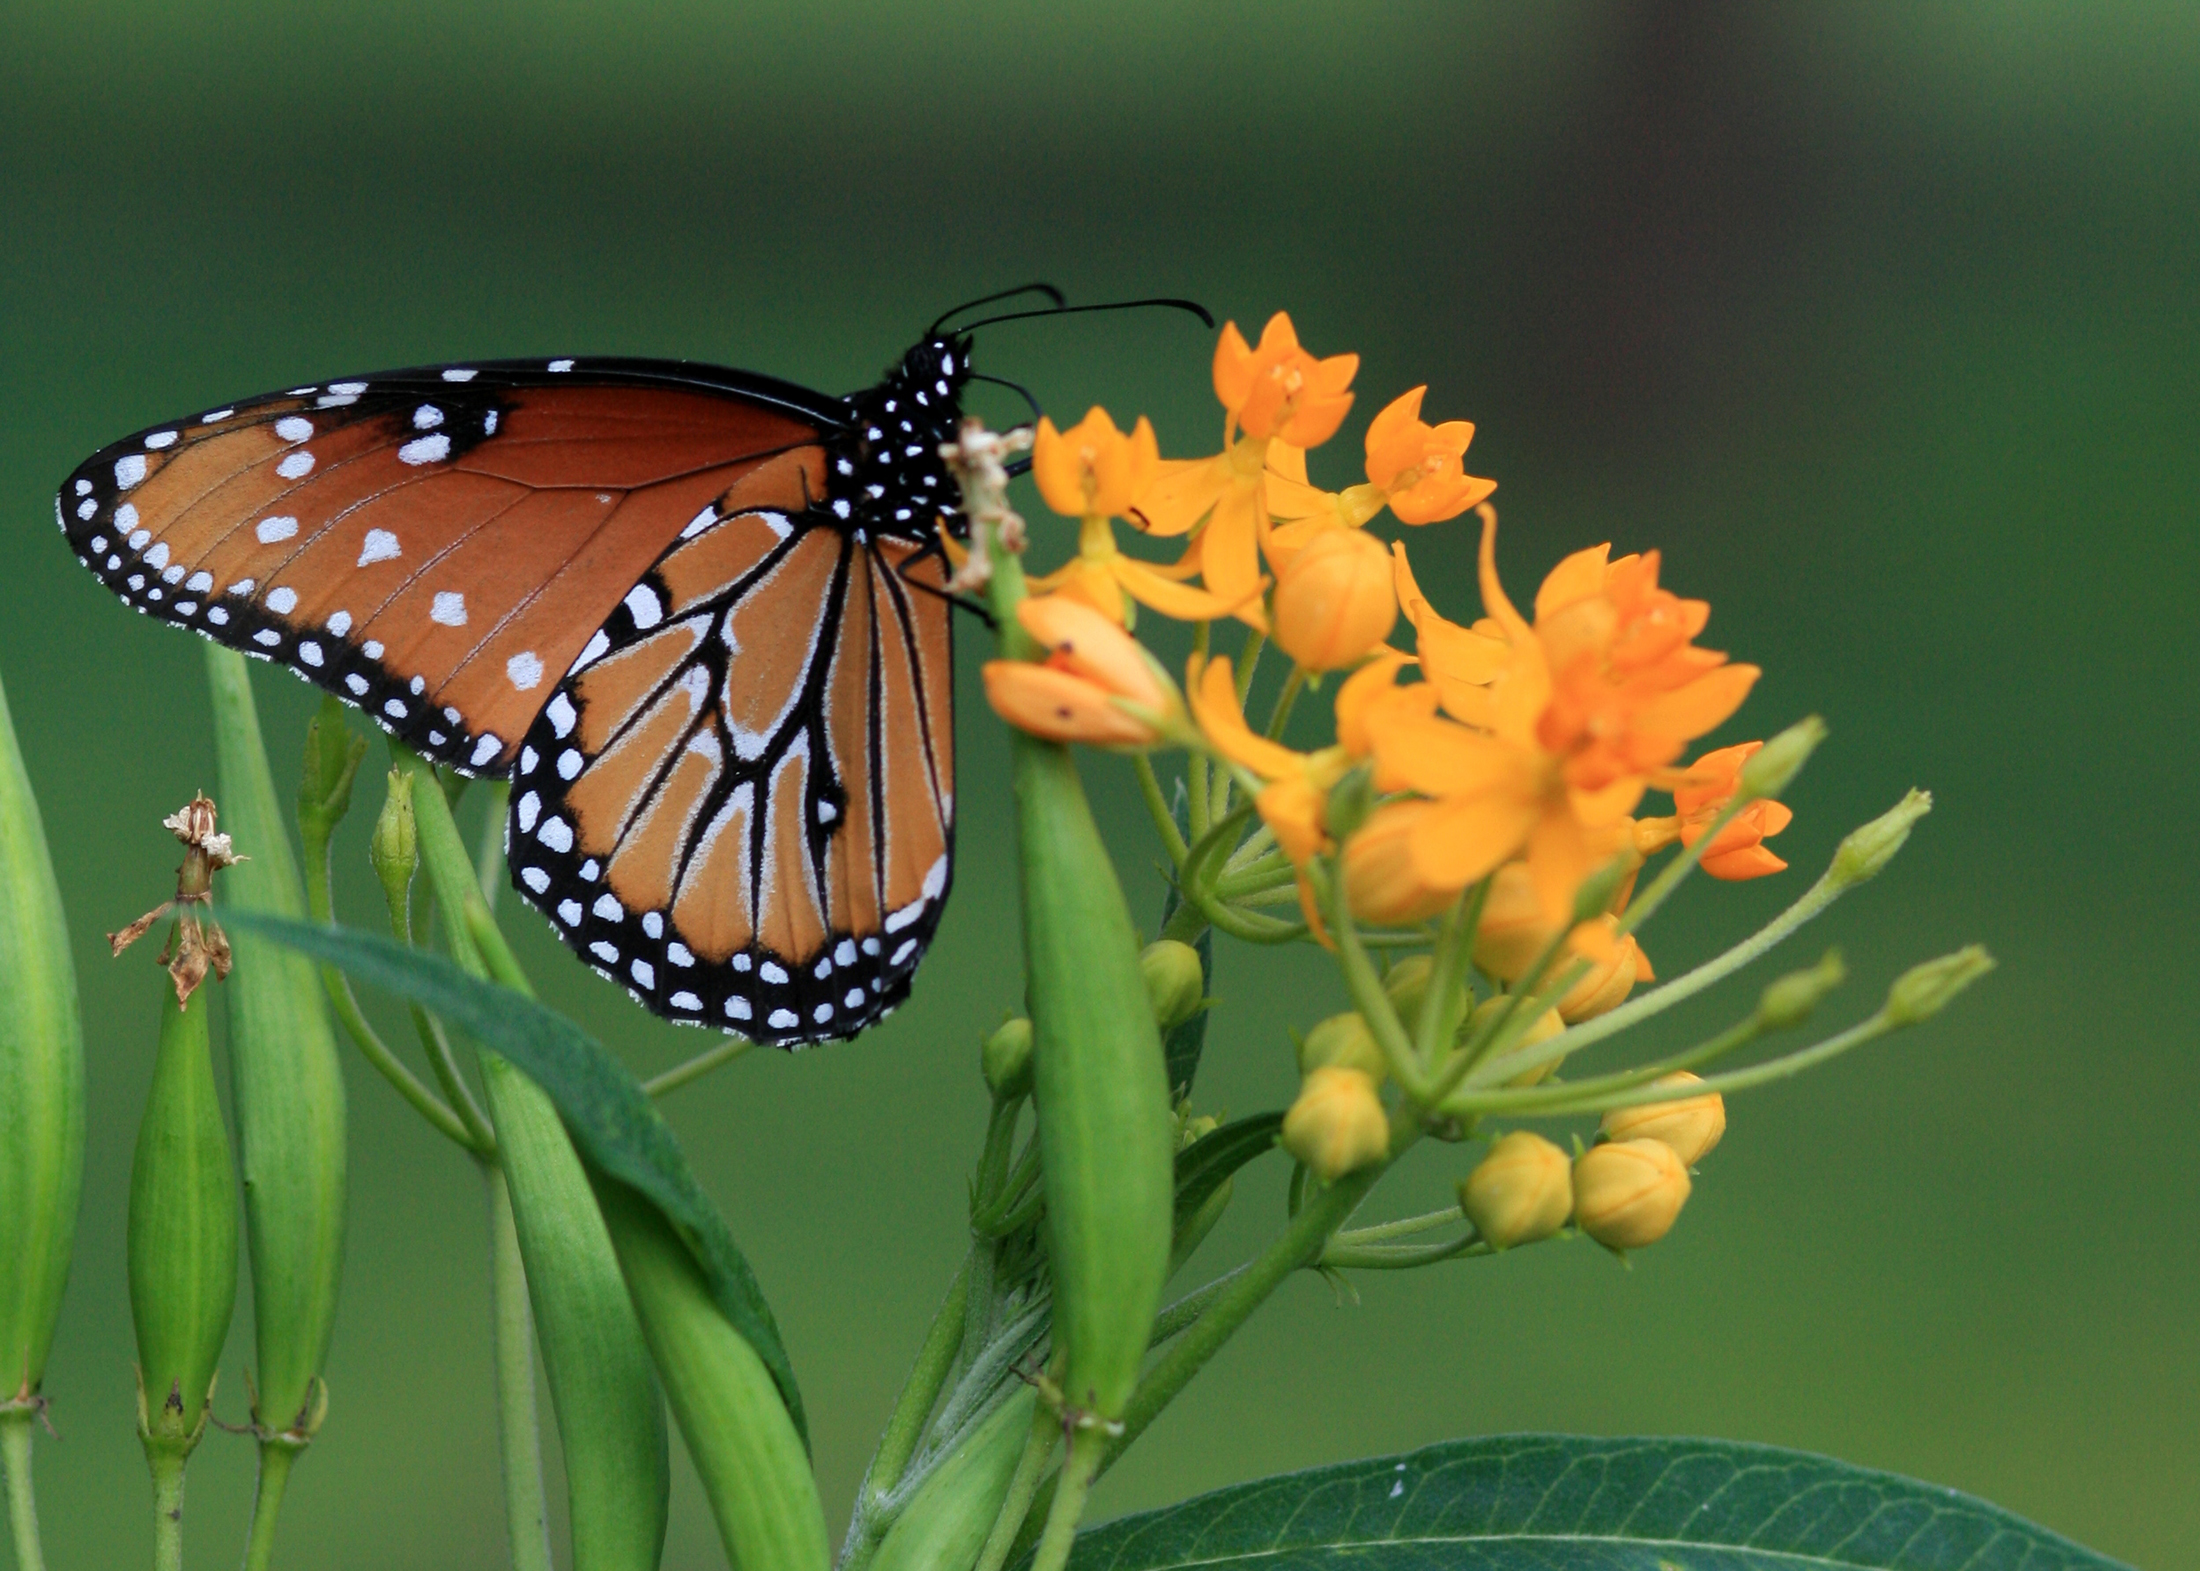 Scientists Seek Public Help to Track Monarch Butterfly Milkweed Habitat